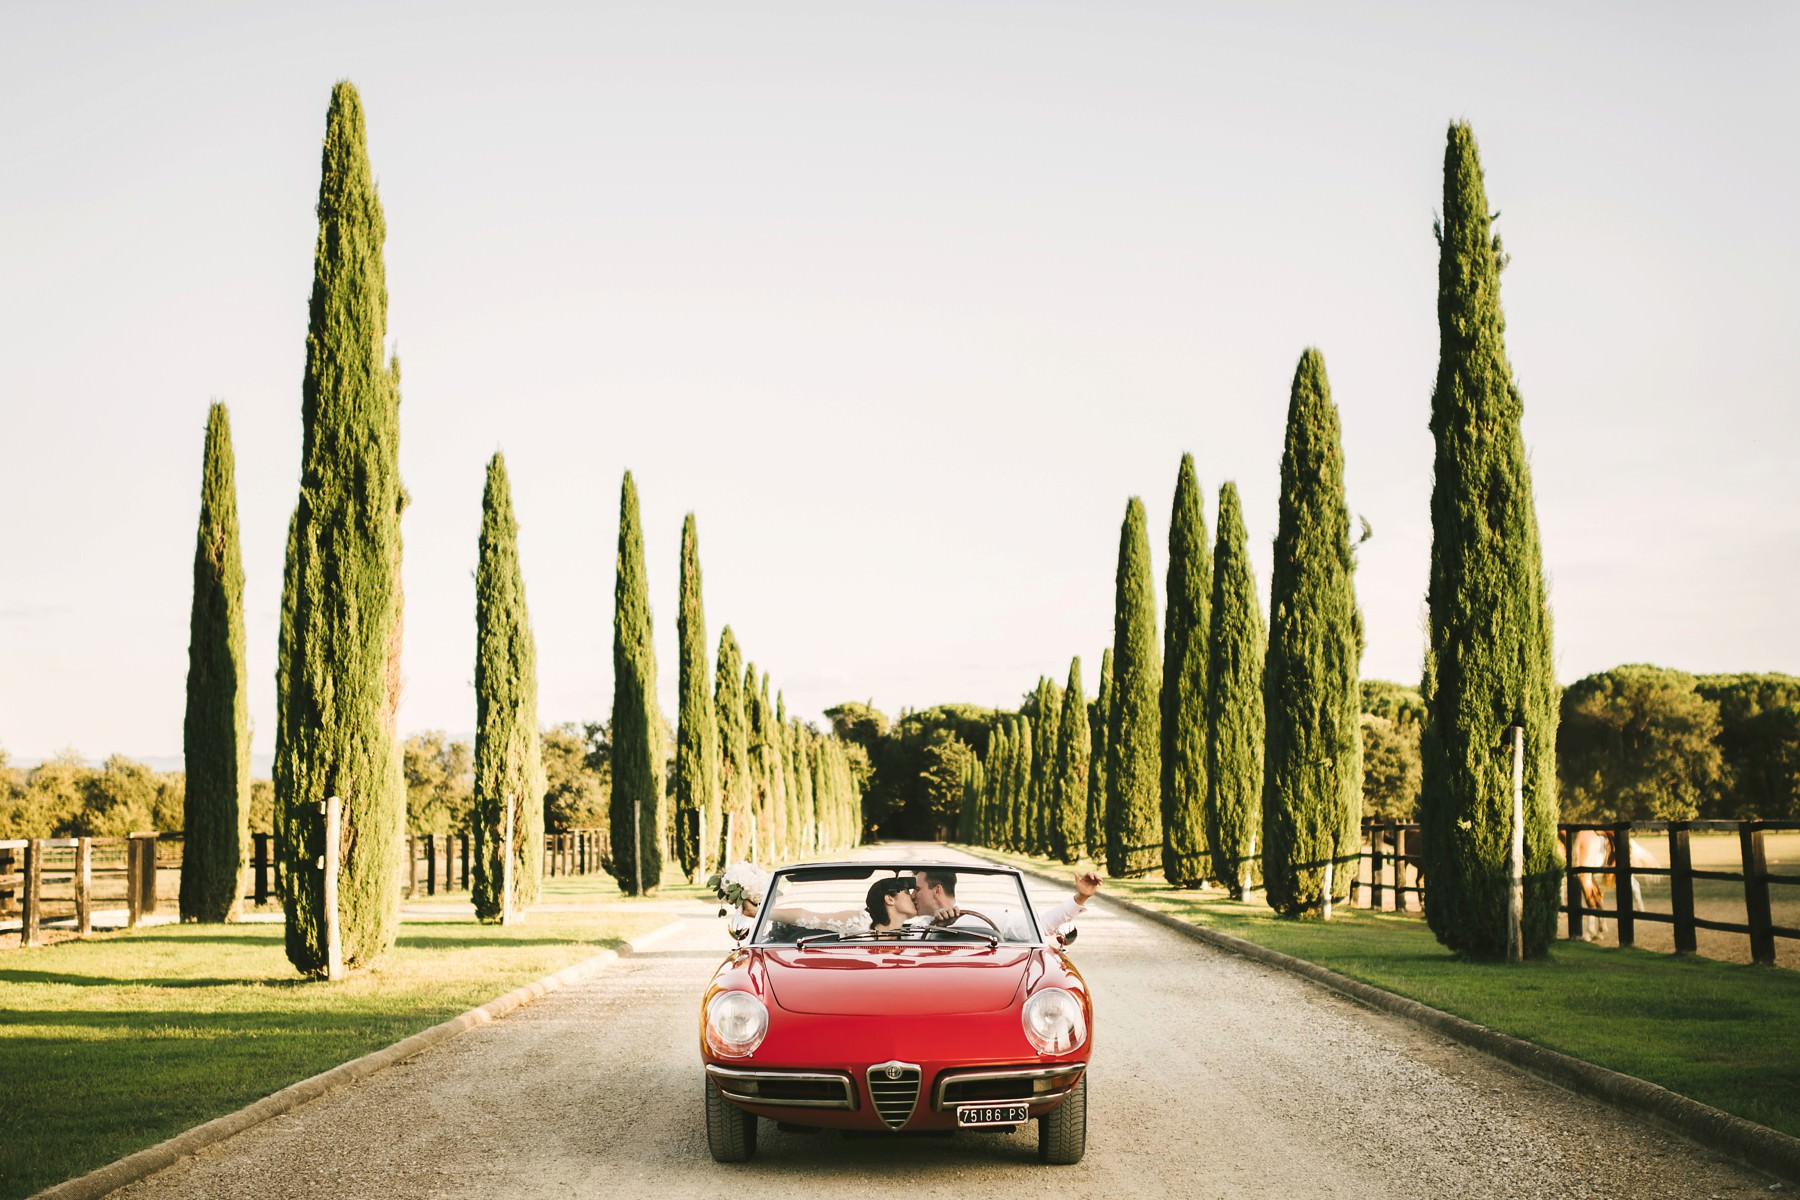 Bride and groom special kiss on Alfa Romeo vintage car in cypress road near Montelucci Country Resort